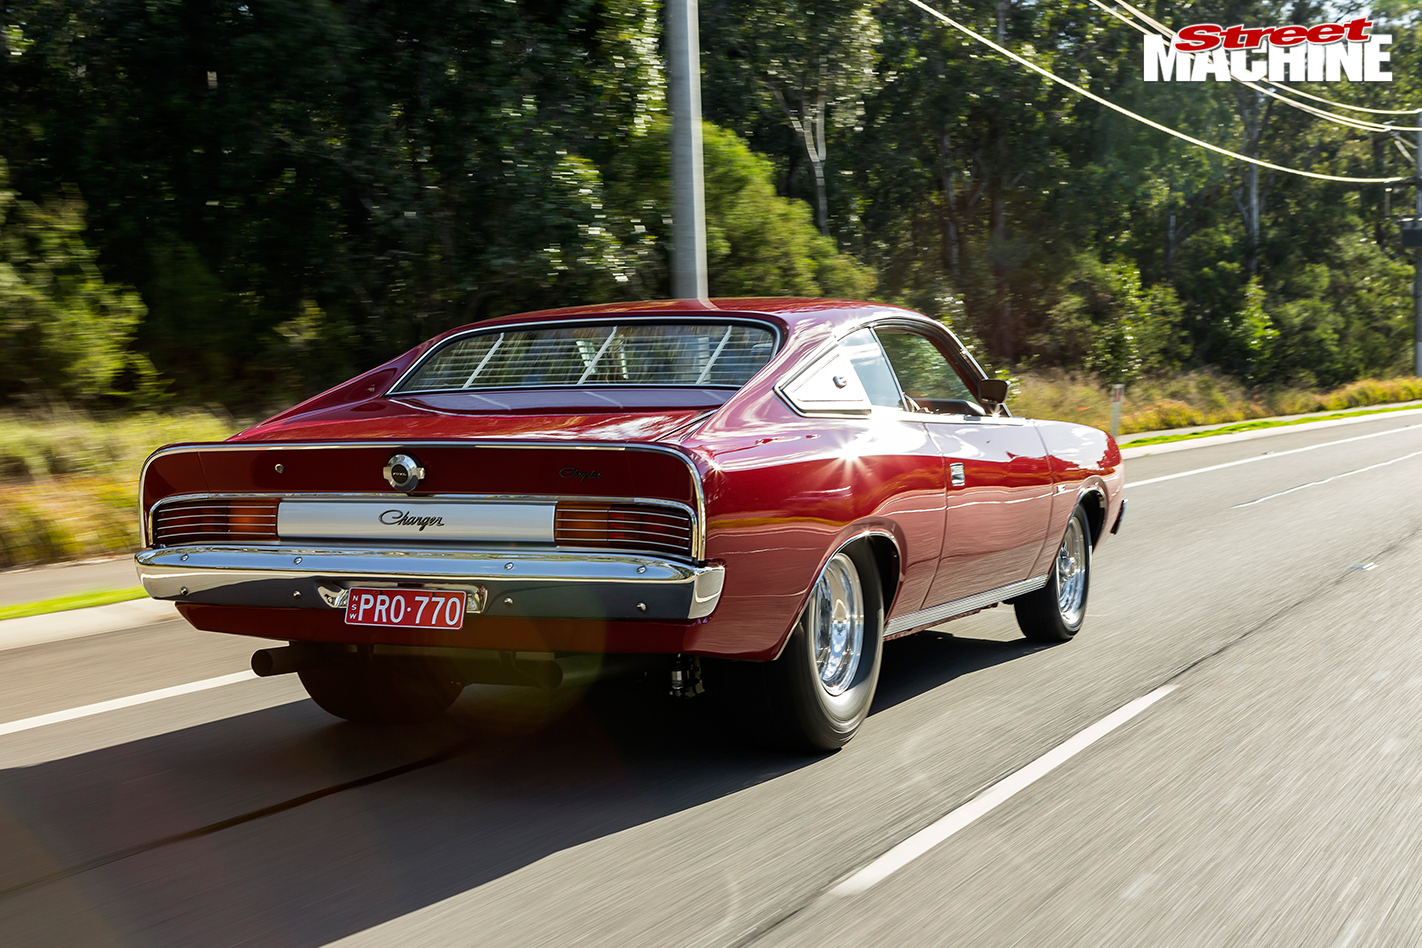 Chrysler -cl -charger -onroad -rear